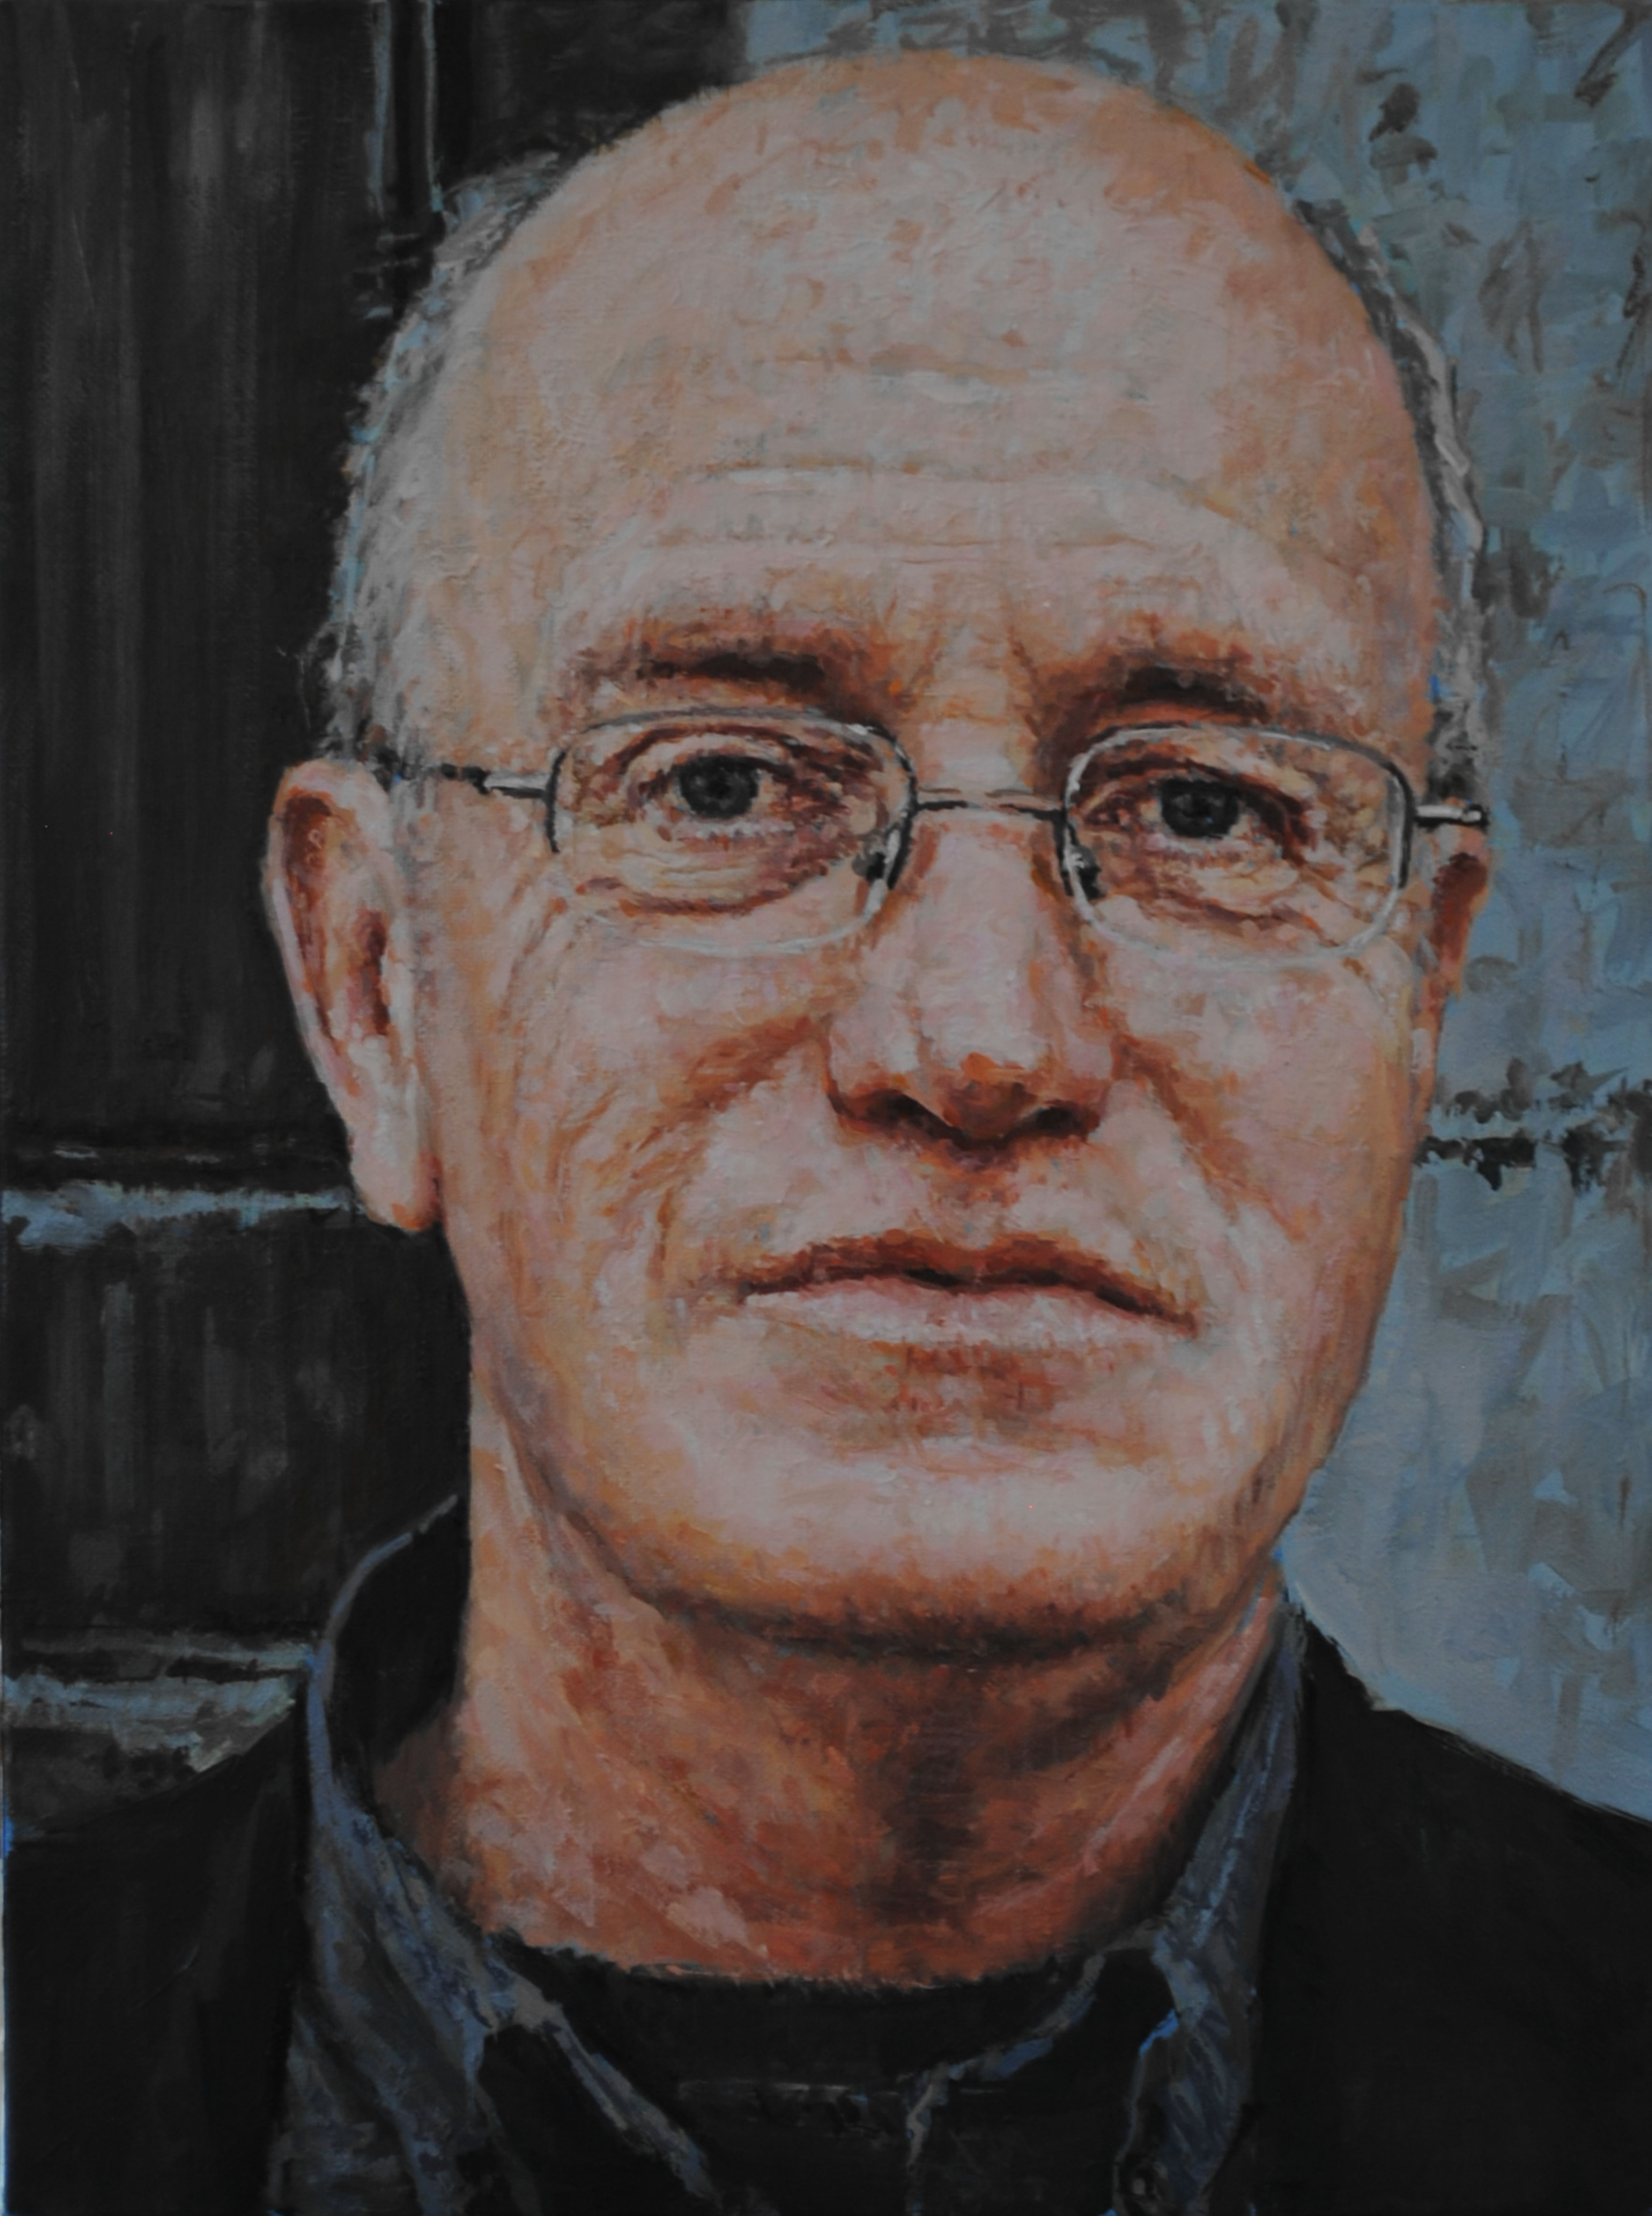 iain sinclair by luca del baldo. Part of the Visonary Academy of ocular mentality